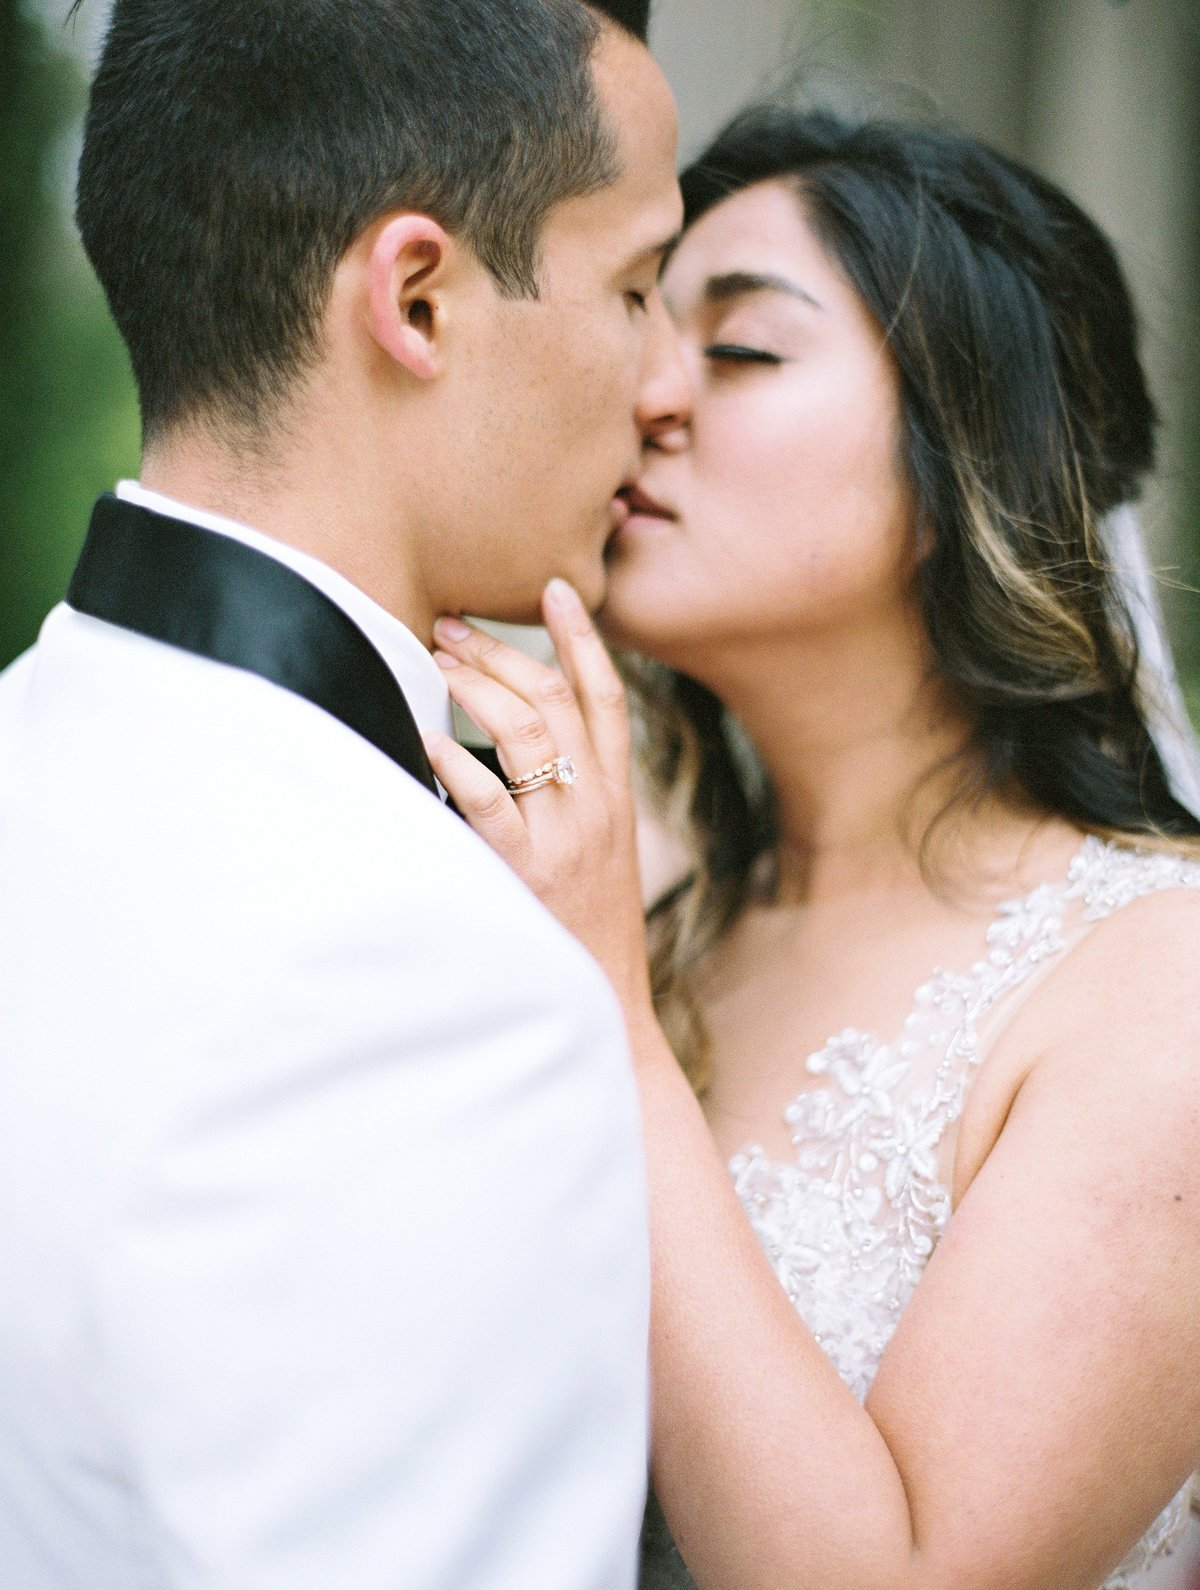 daniel-and-bethany-weddings-close-up-kiss